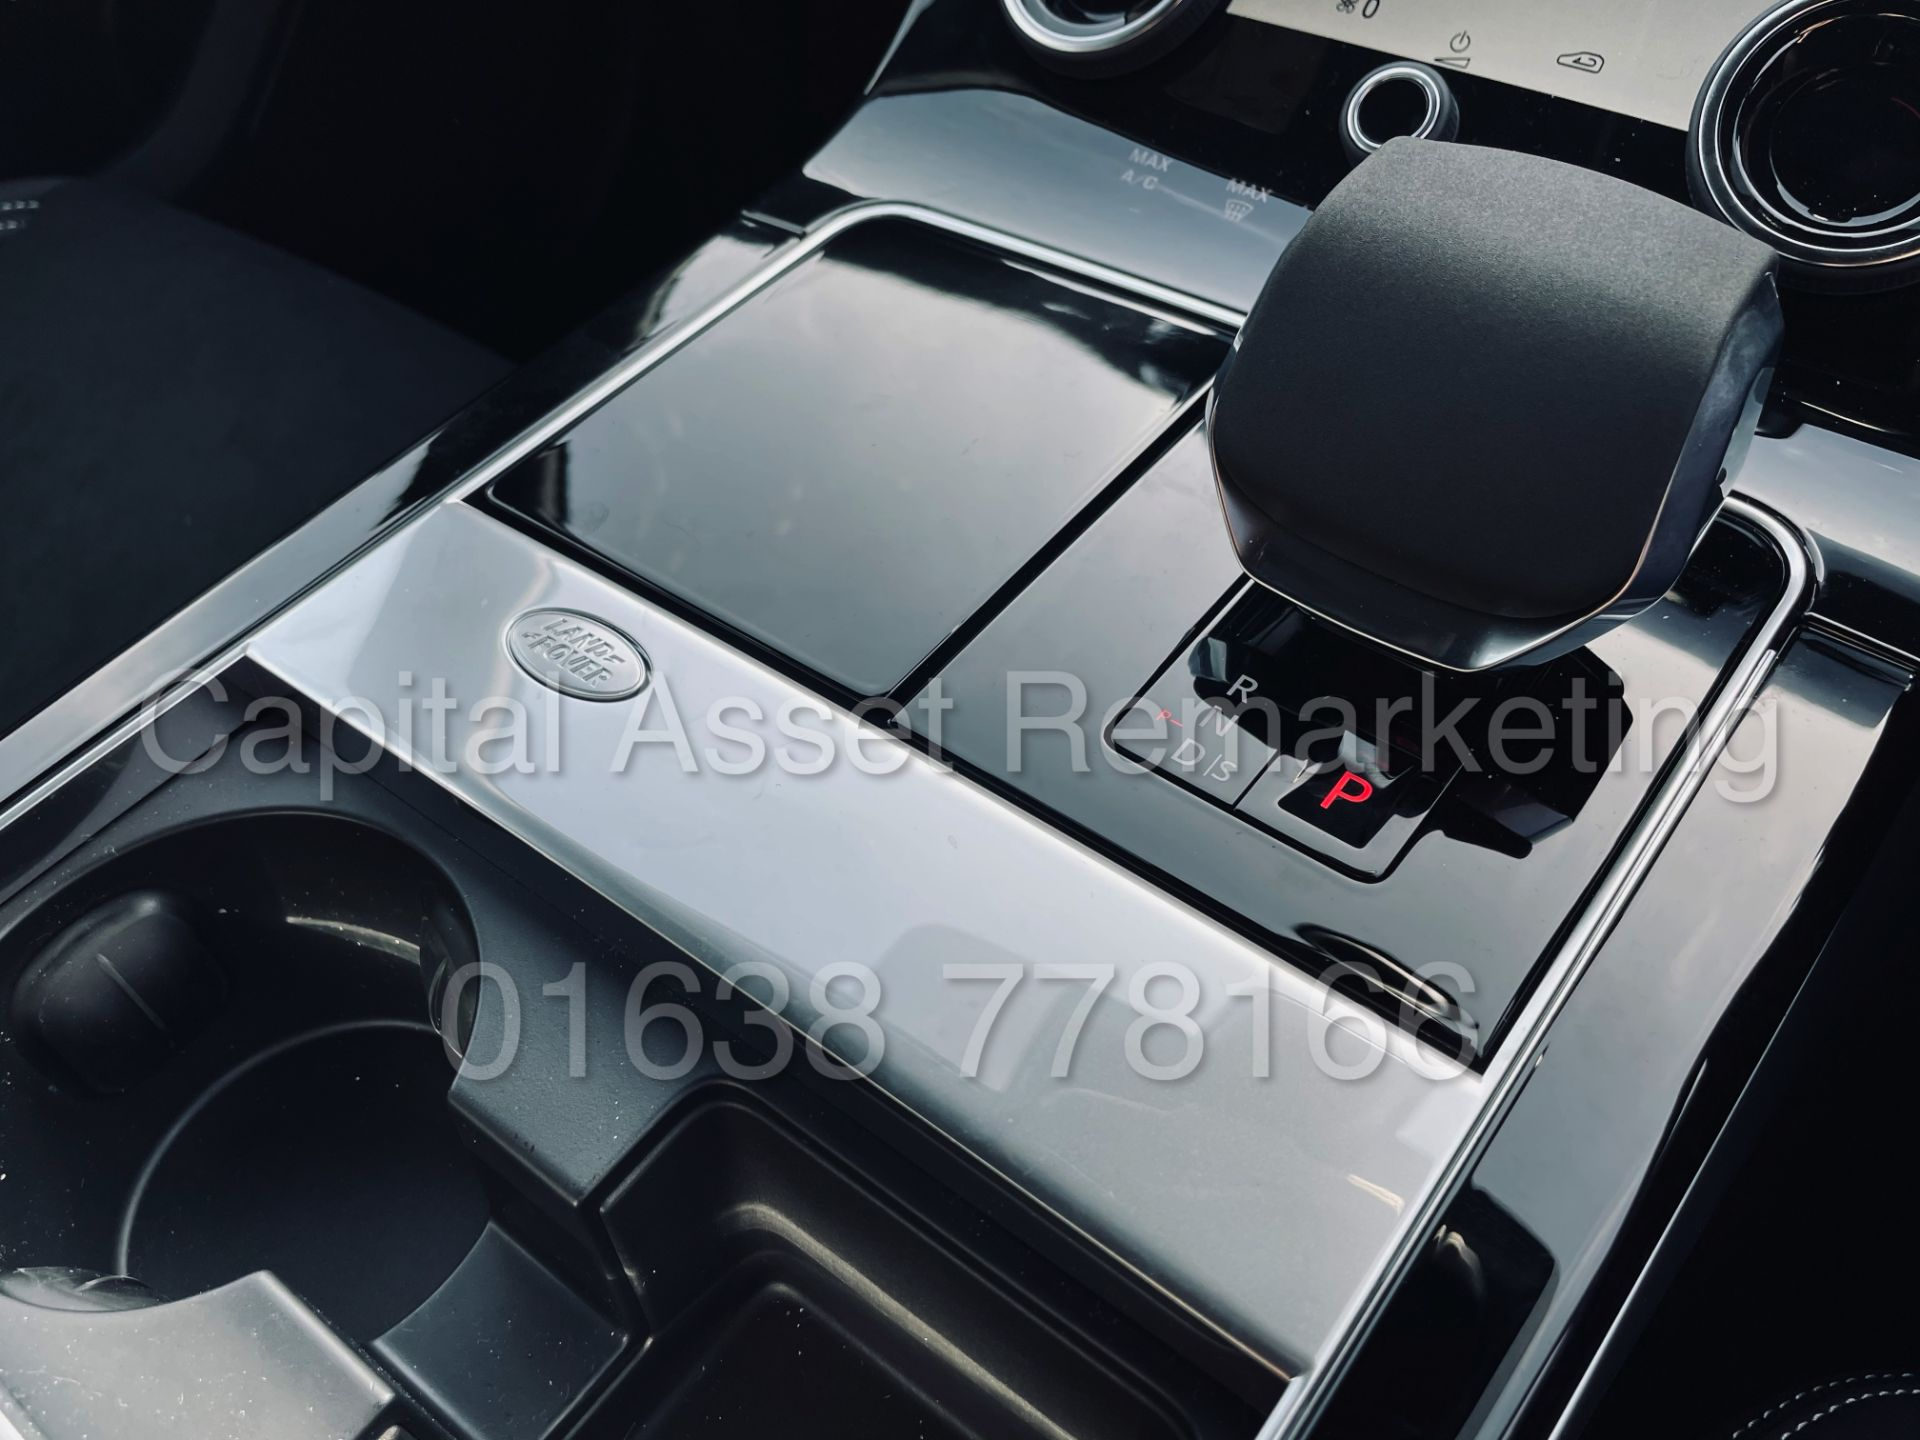 (On Sale) RANGE ROVER VELAR *R-DYNAMIC* SUV (2021) *8 SPEED AUTO - LEATHER* (DELIVERY MILES) - Image 46 of 50